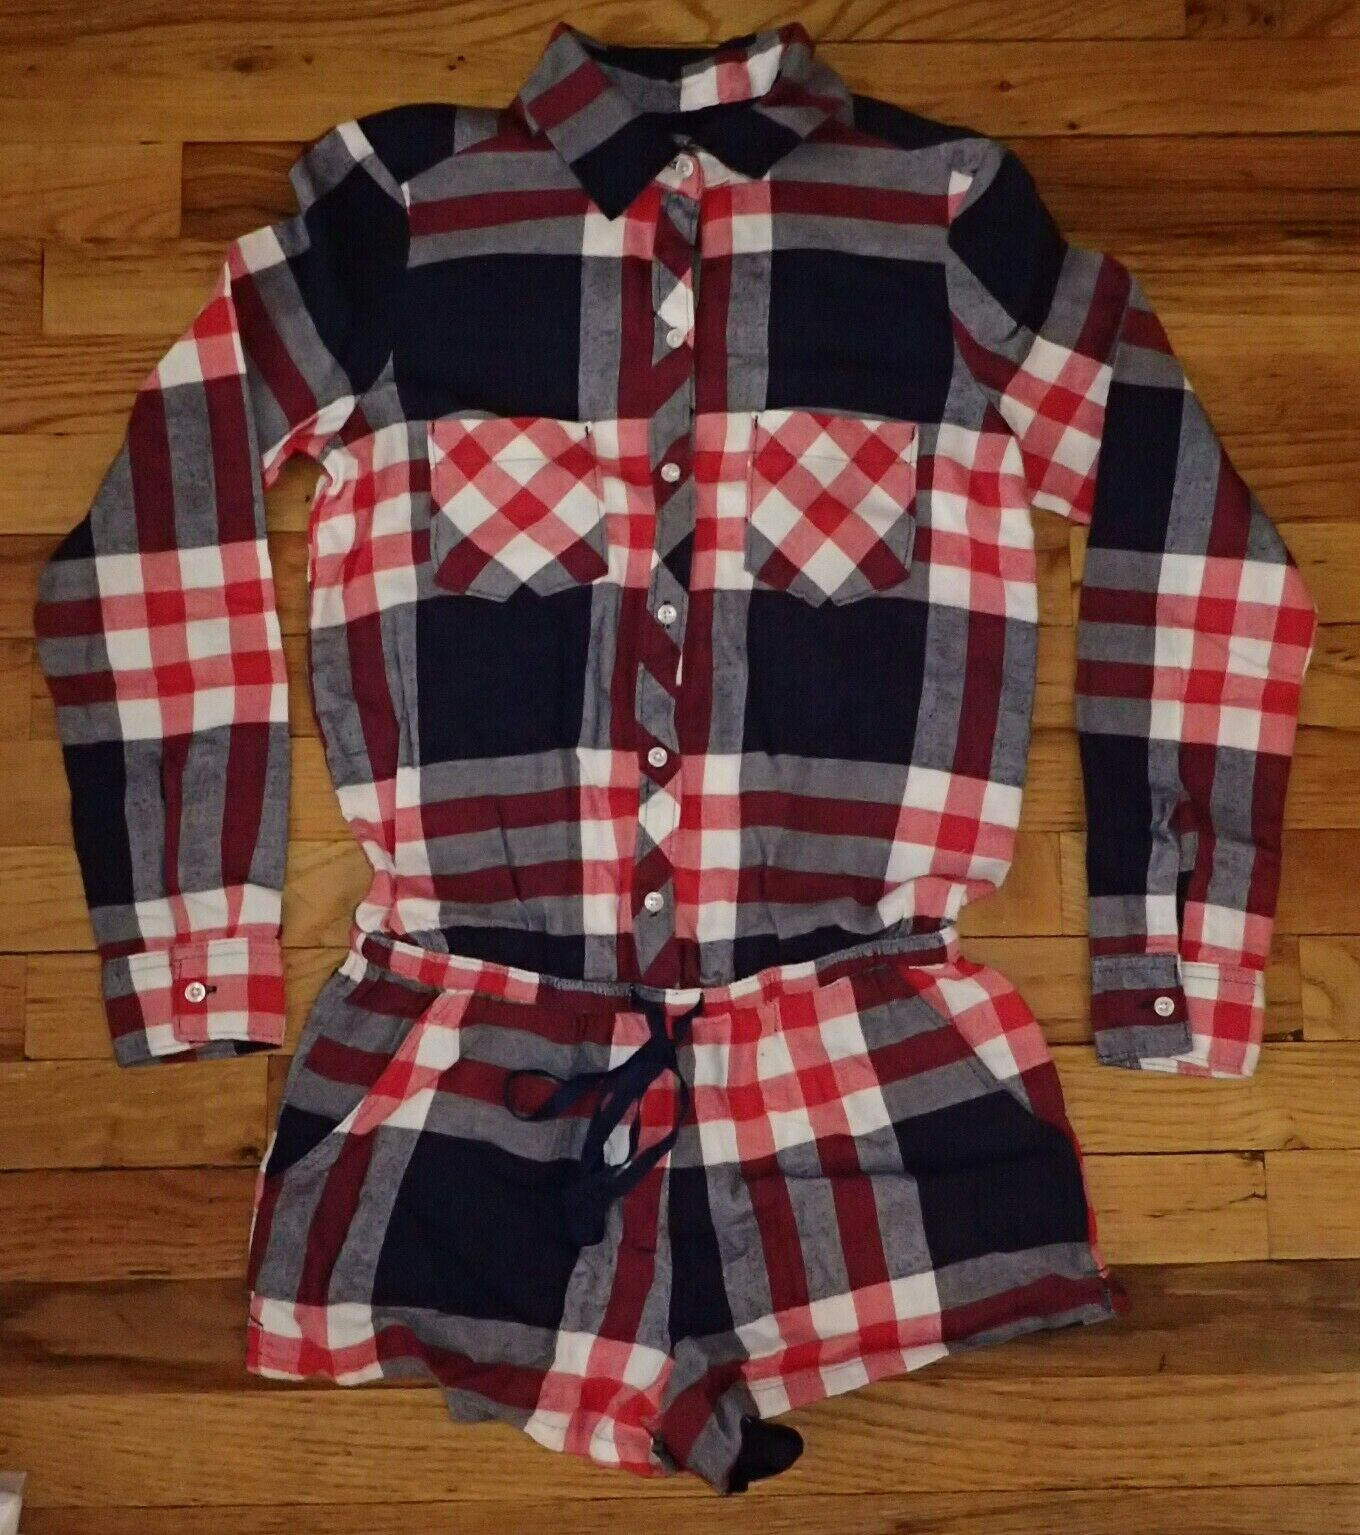 Aerie bluee White Red Plaid Pajama Romper XS - New